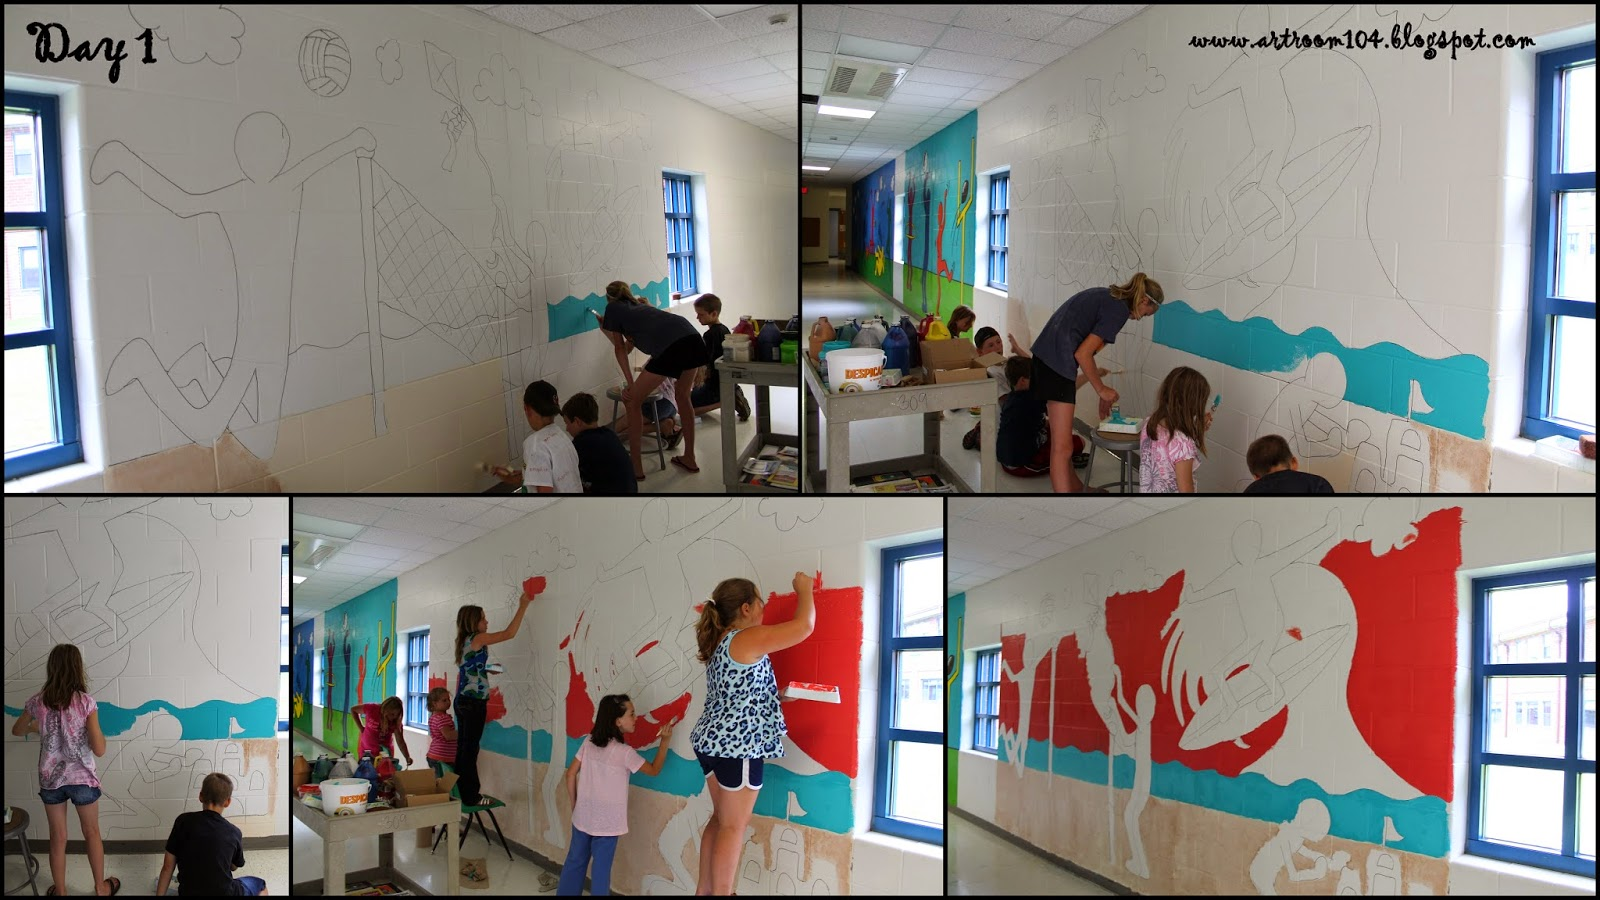 Art room 104 summer program keith haring murals for Chroma mural paint